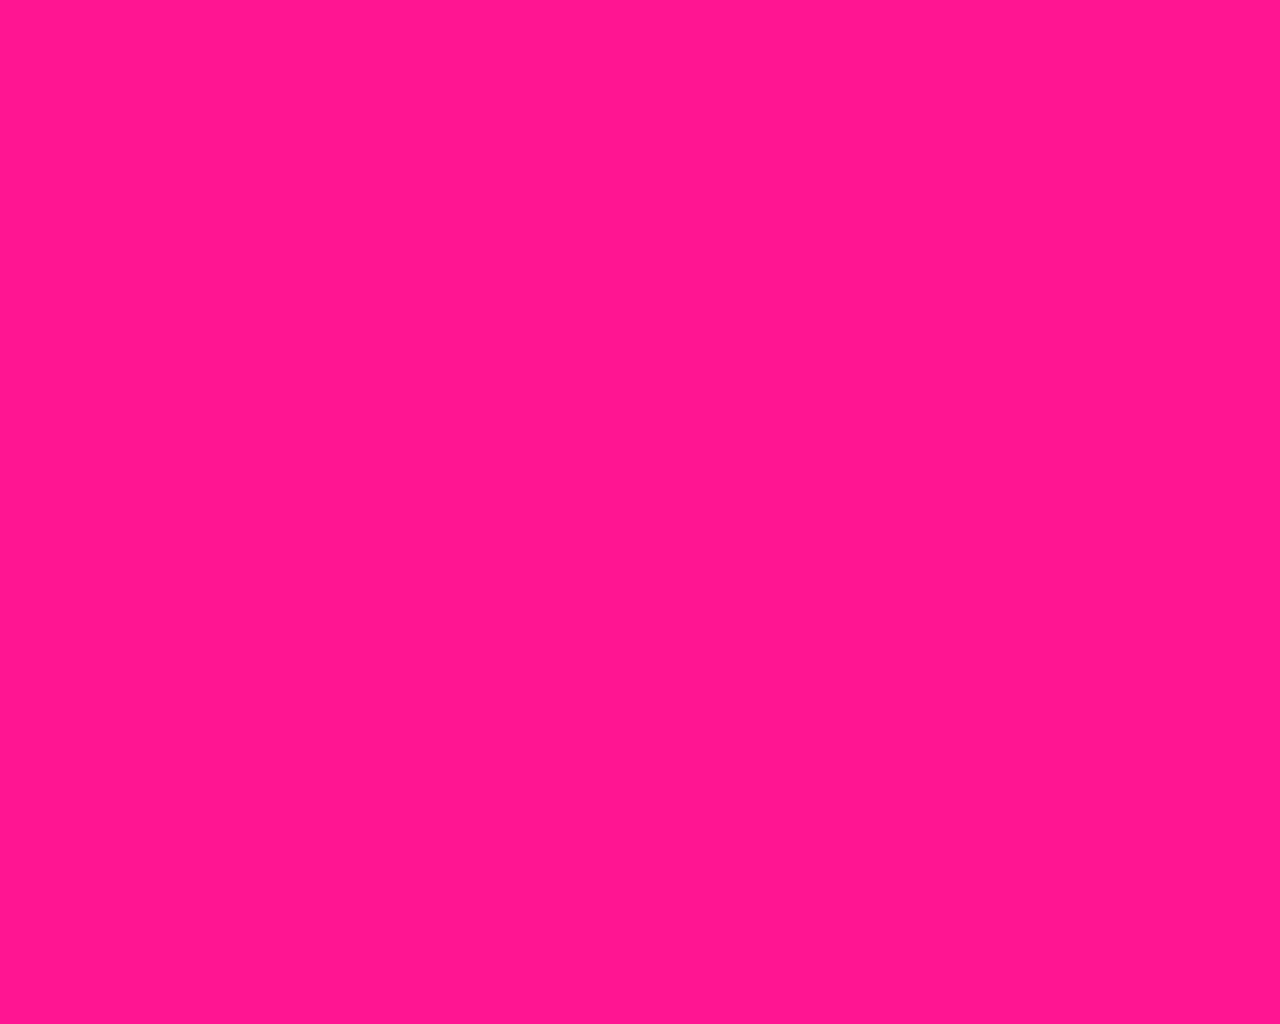 1280x1024 Fluorescent Pink Solid Color Background